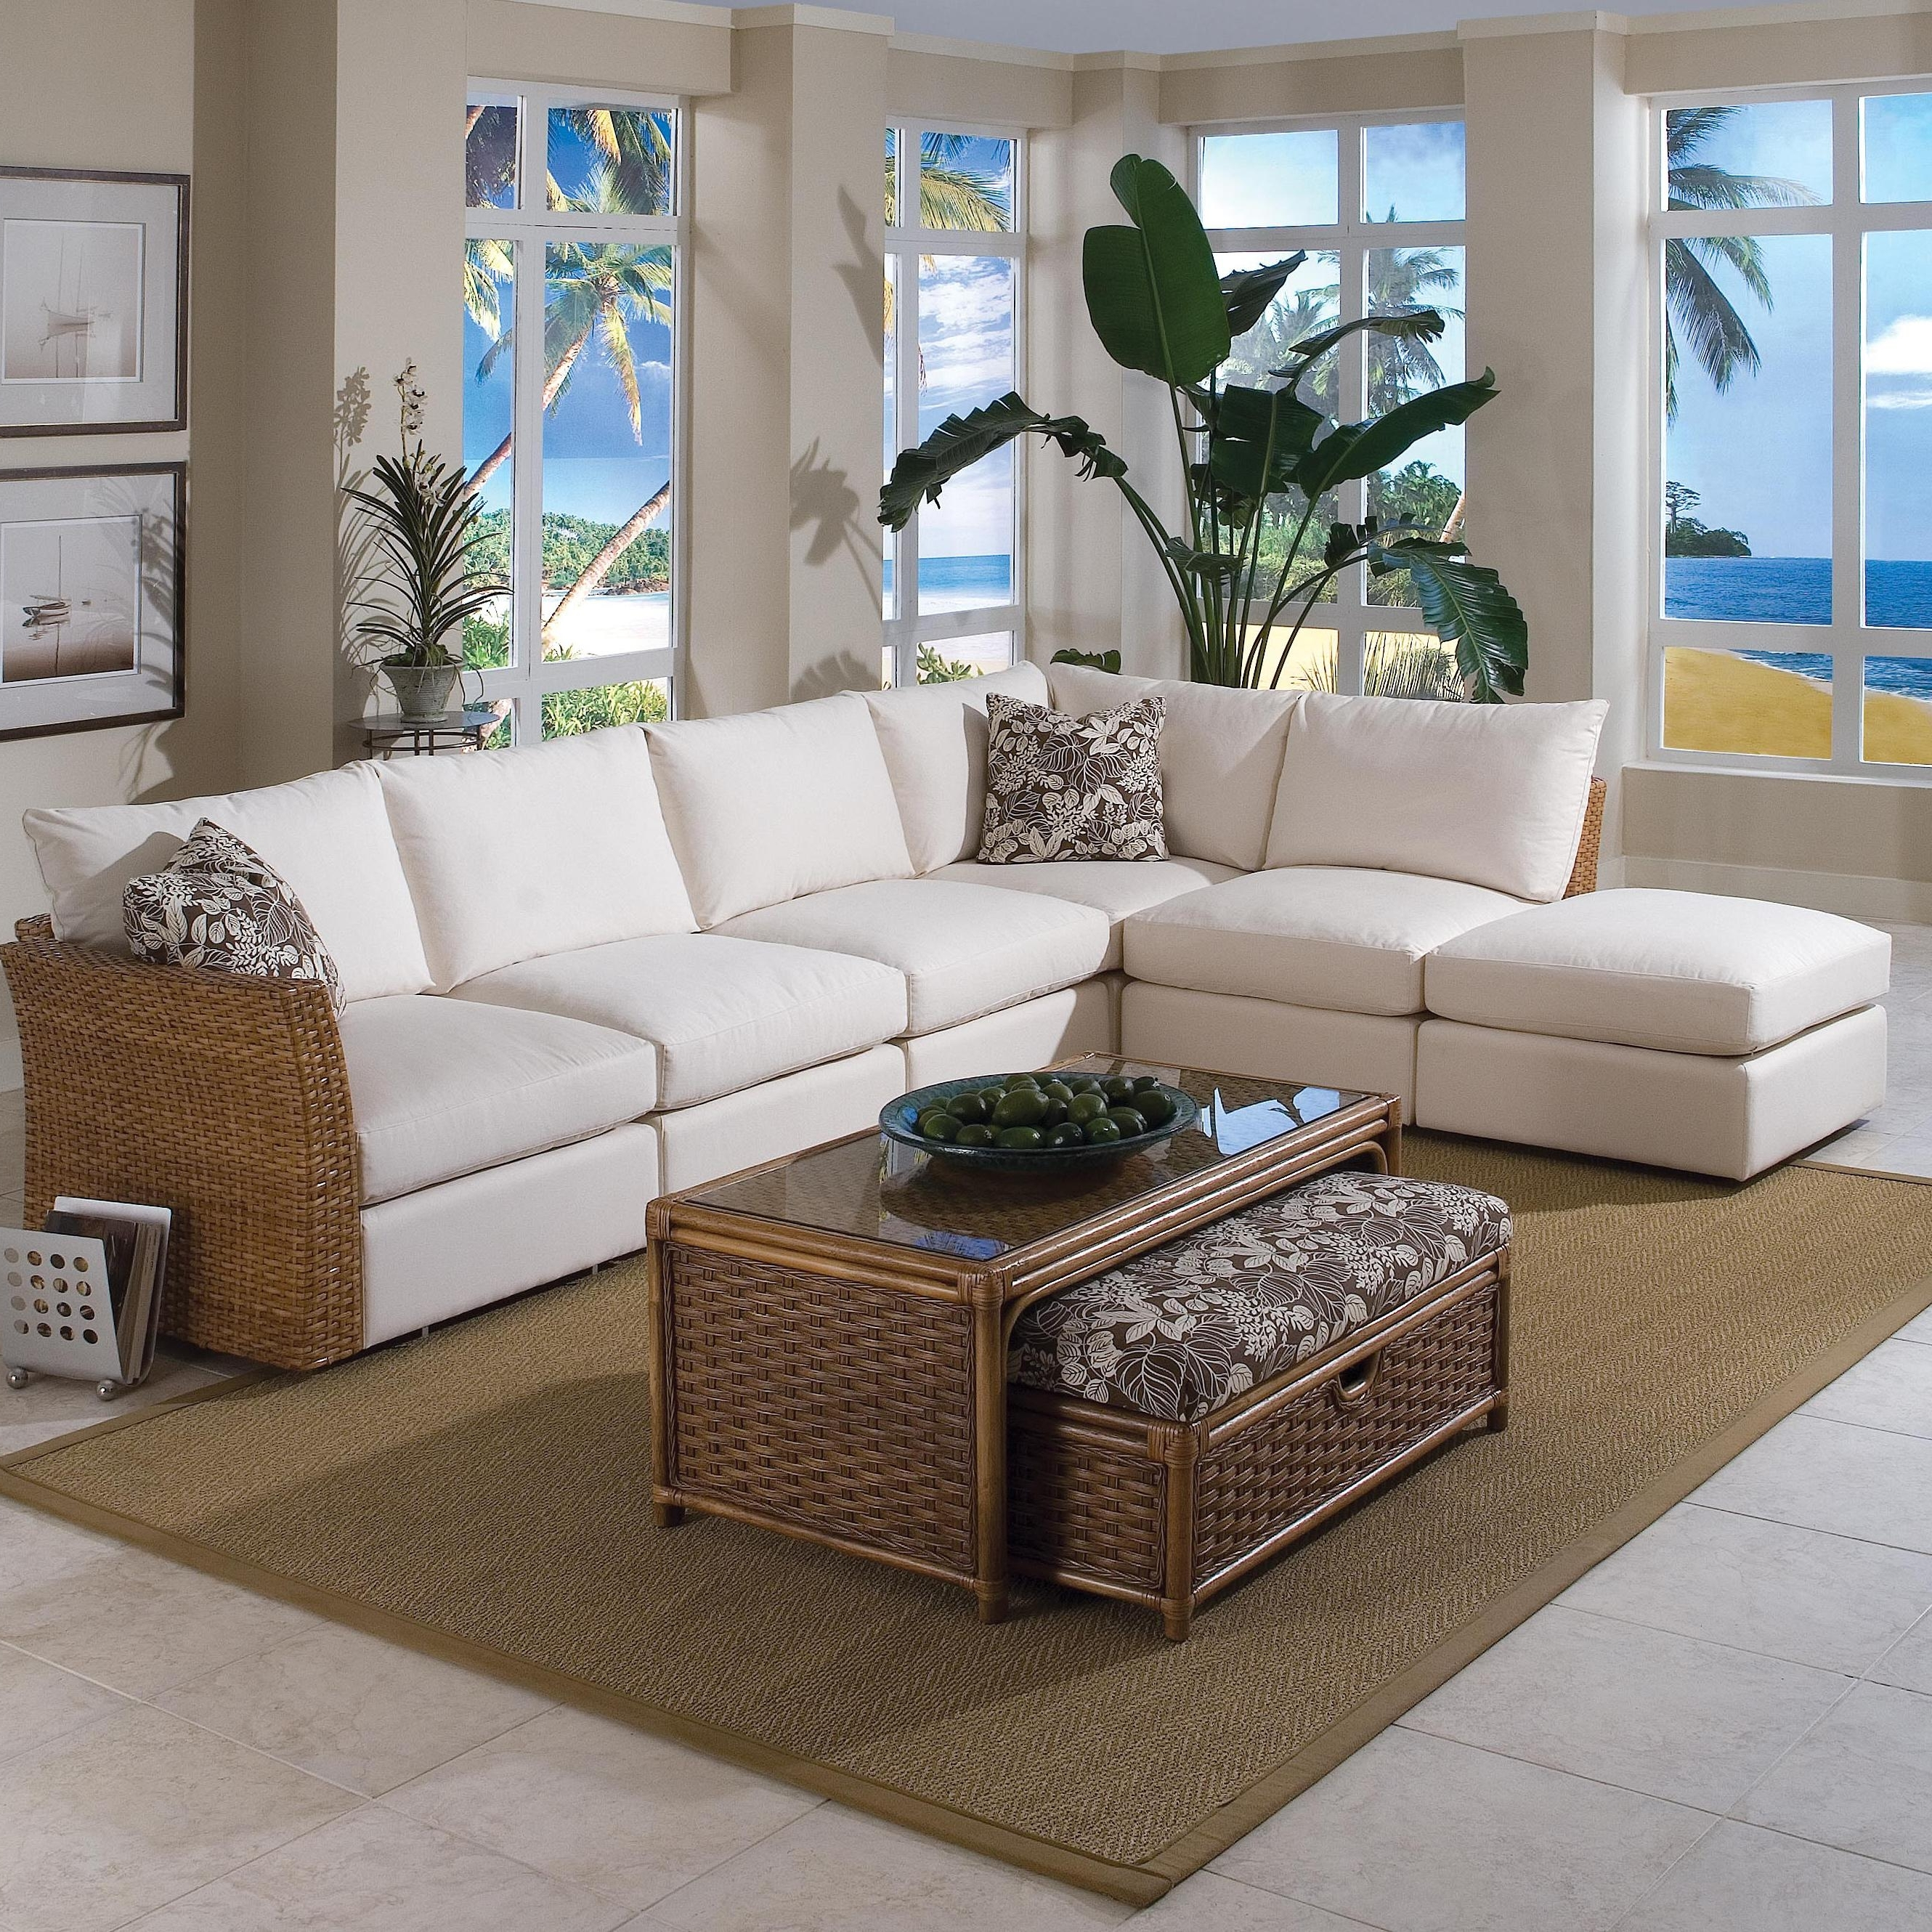 Preferred Greenville Sc Sectional Sofas With Regard To Braxton Culler Grand Water Point Tropical Sectional Sofa With Two (View 13 of 20)